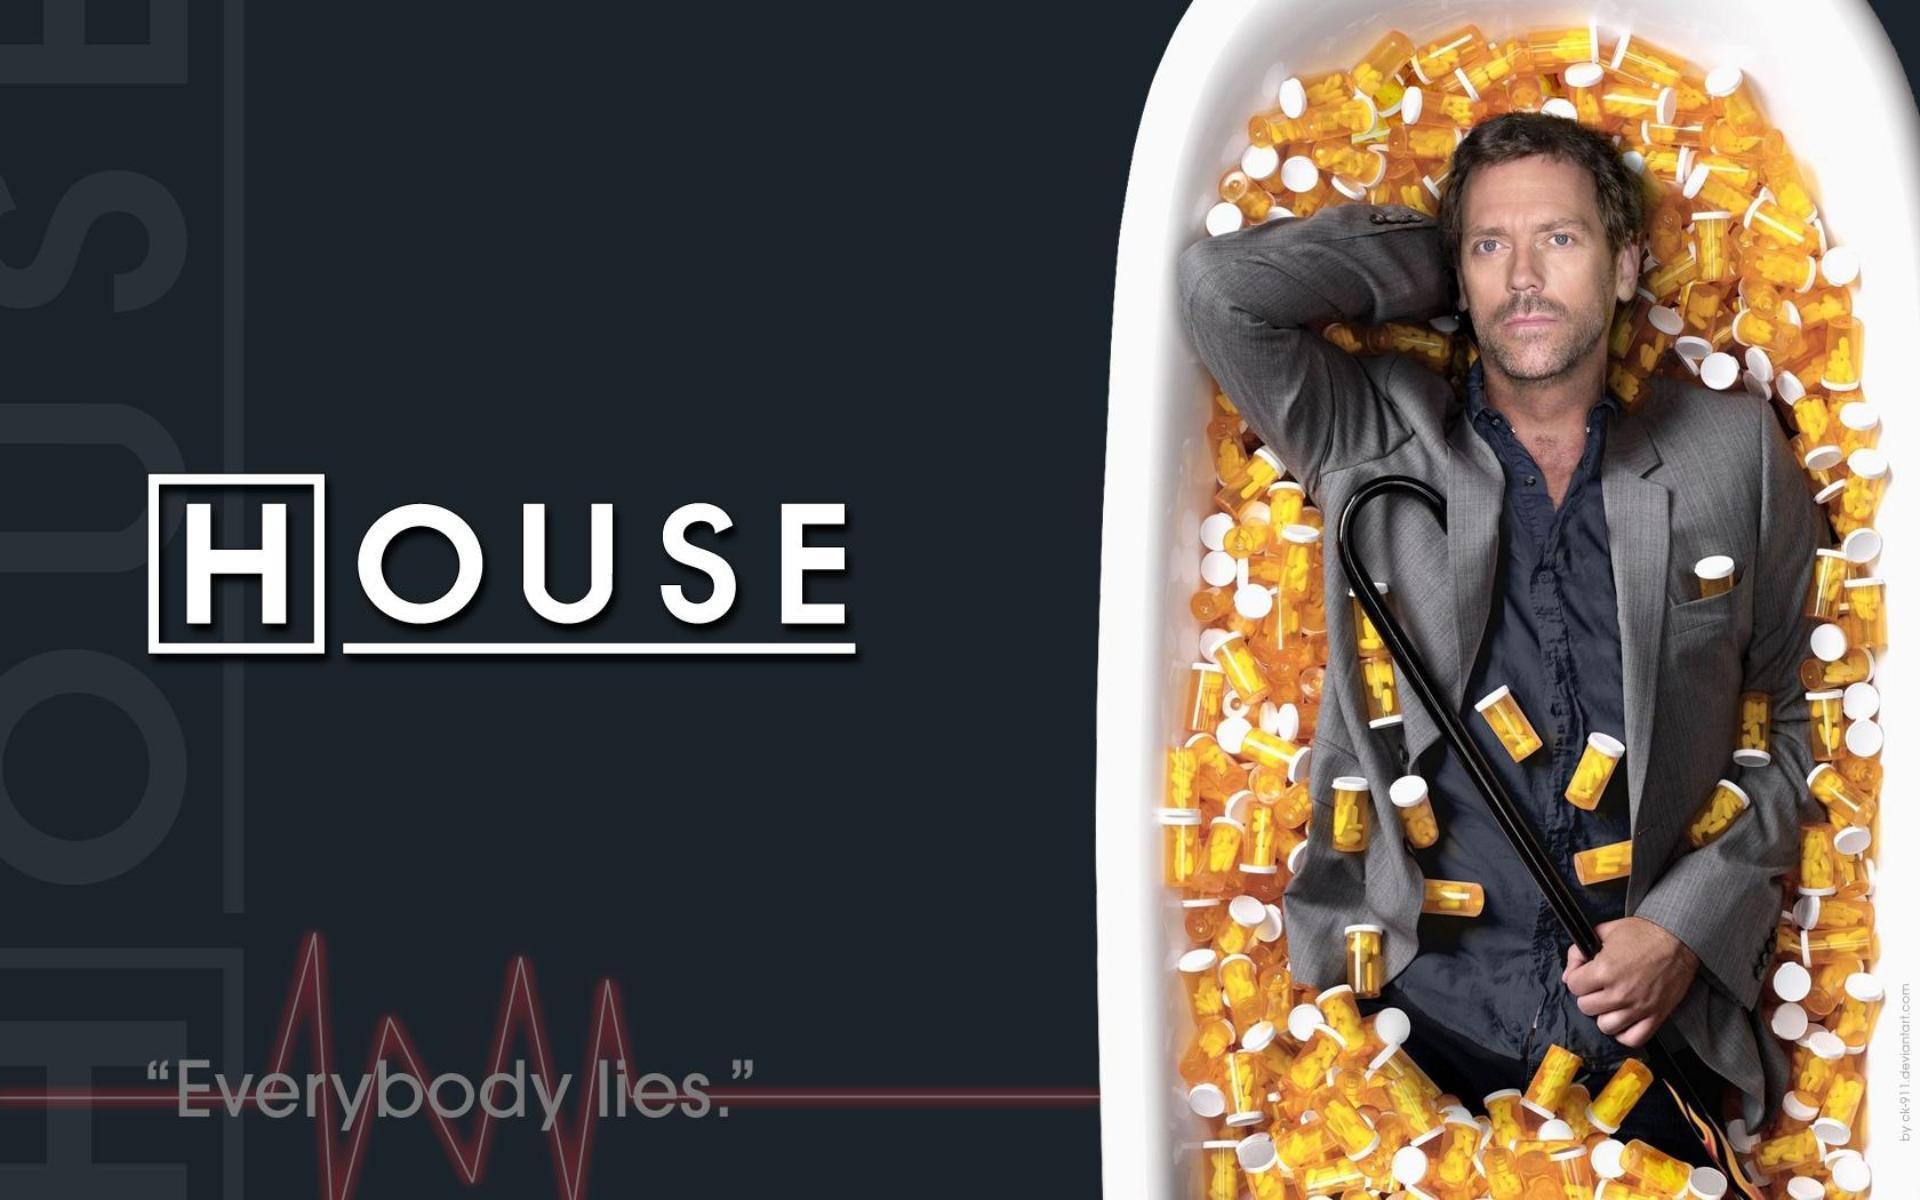 House Md wallpaper - 793492